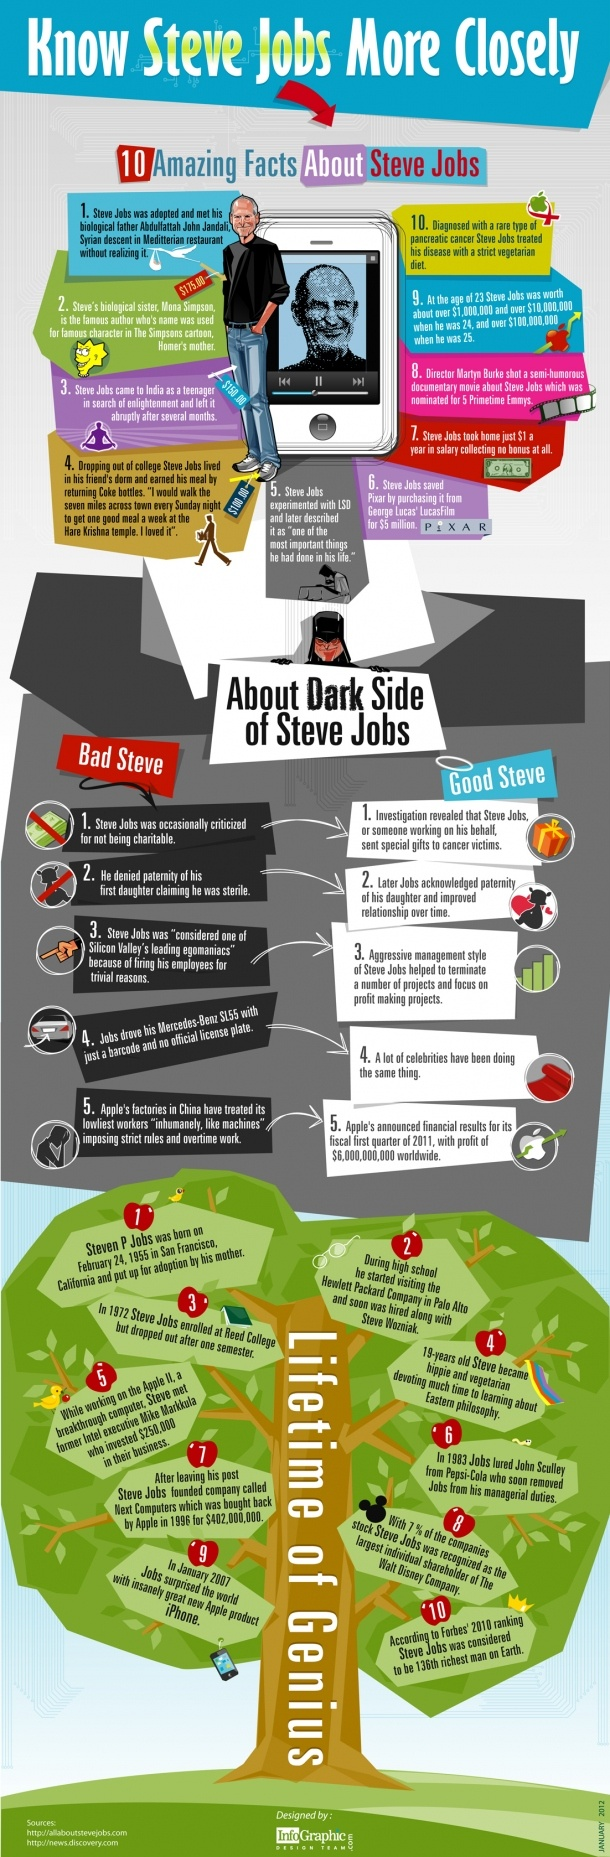 Know Steve Jobs More Closely: 10 Amazing Facts About Steve Jobs [INFOGRAPHIC]